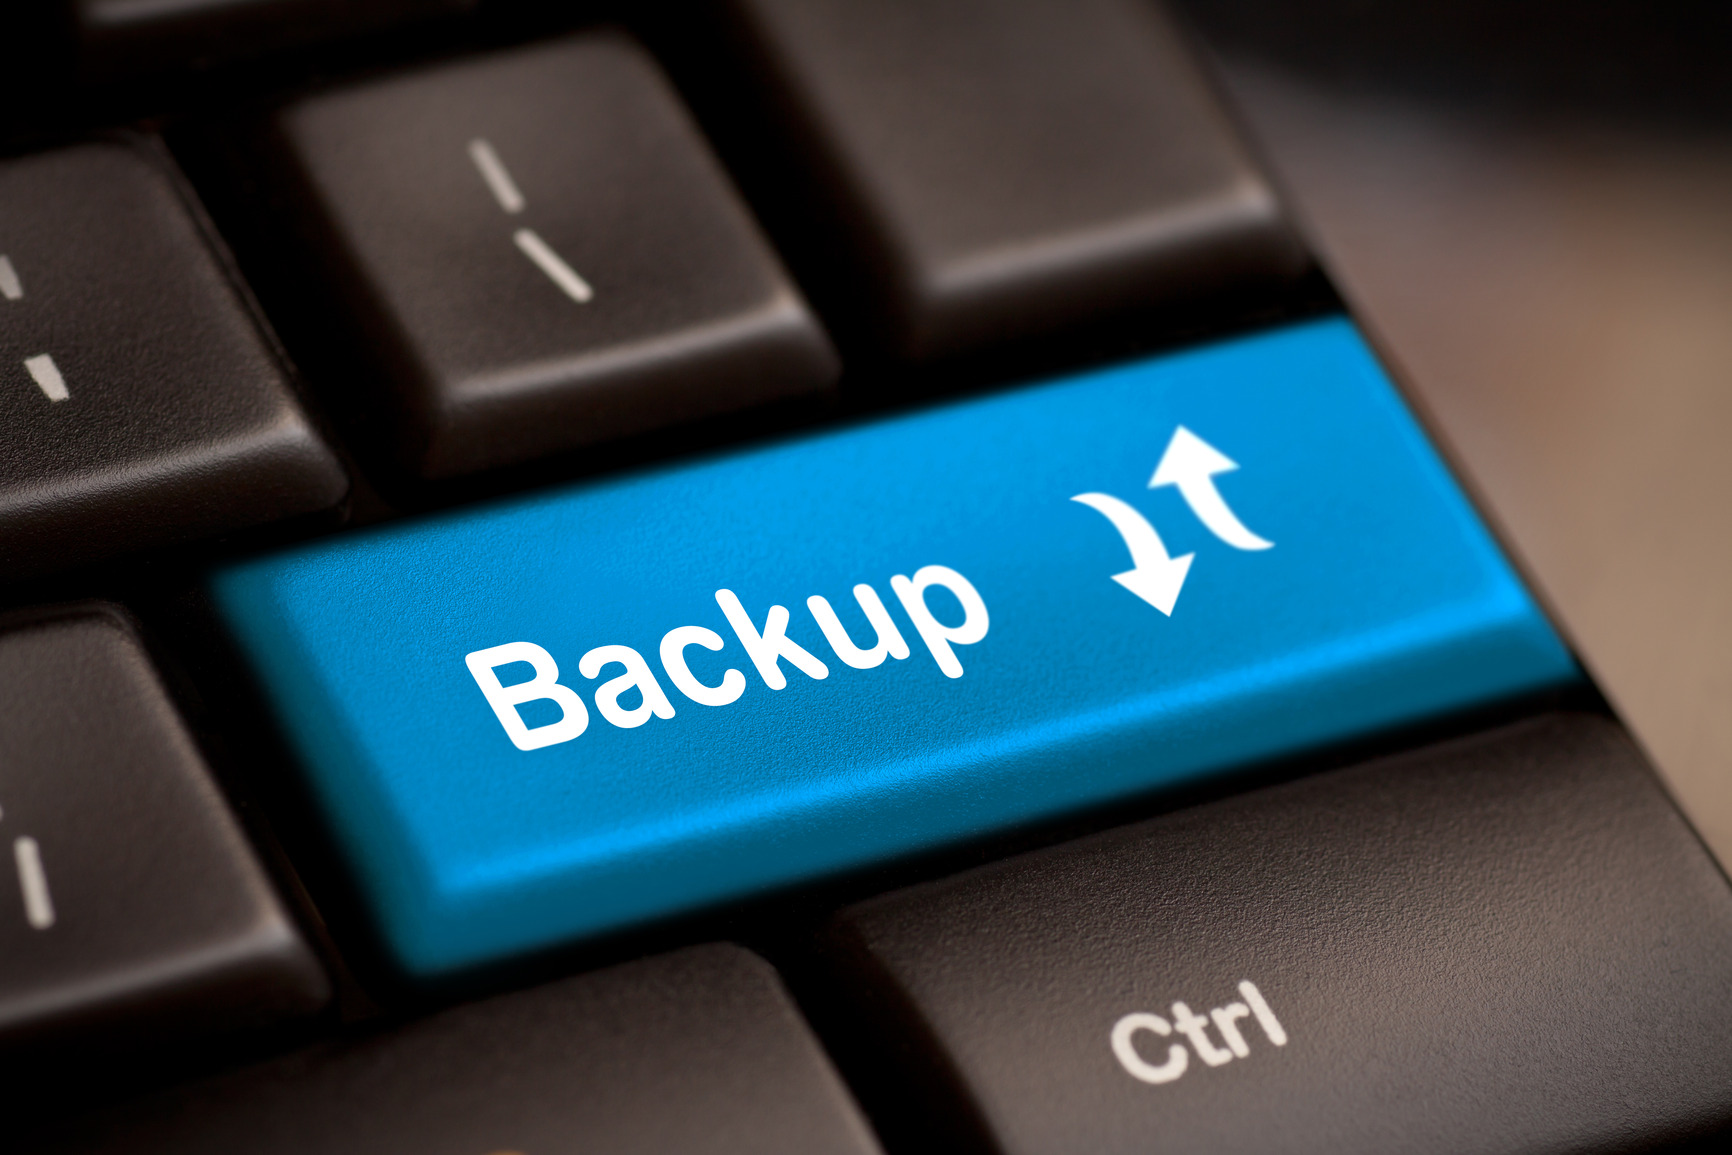 Come e quando fare il backup del pc